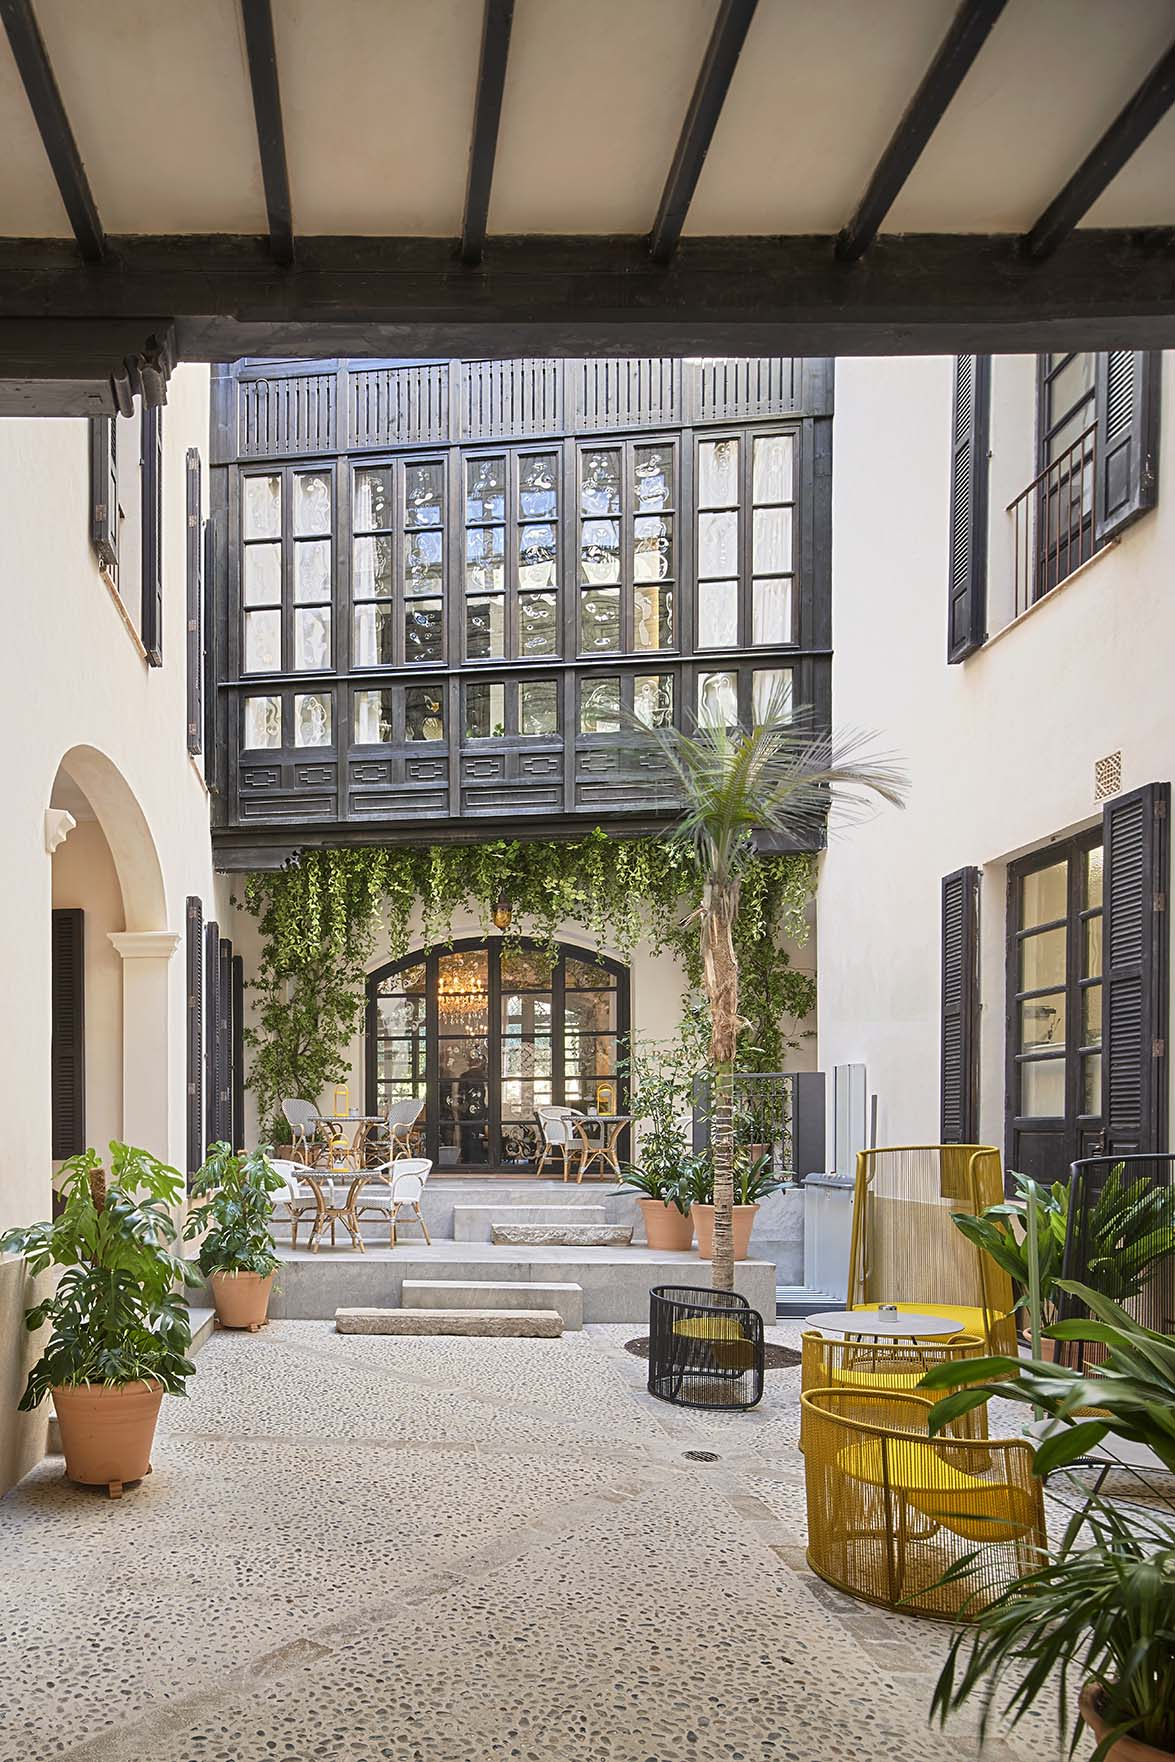 A SMALL OASIS IN THE HEART OF PALMA DE MALLORCA INSPIRED BY